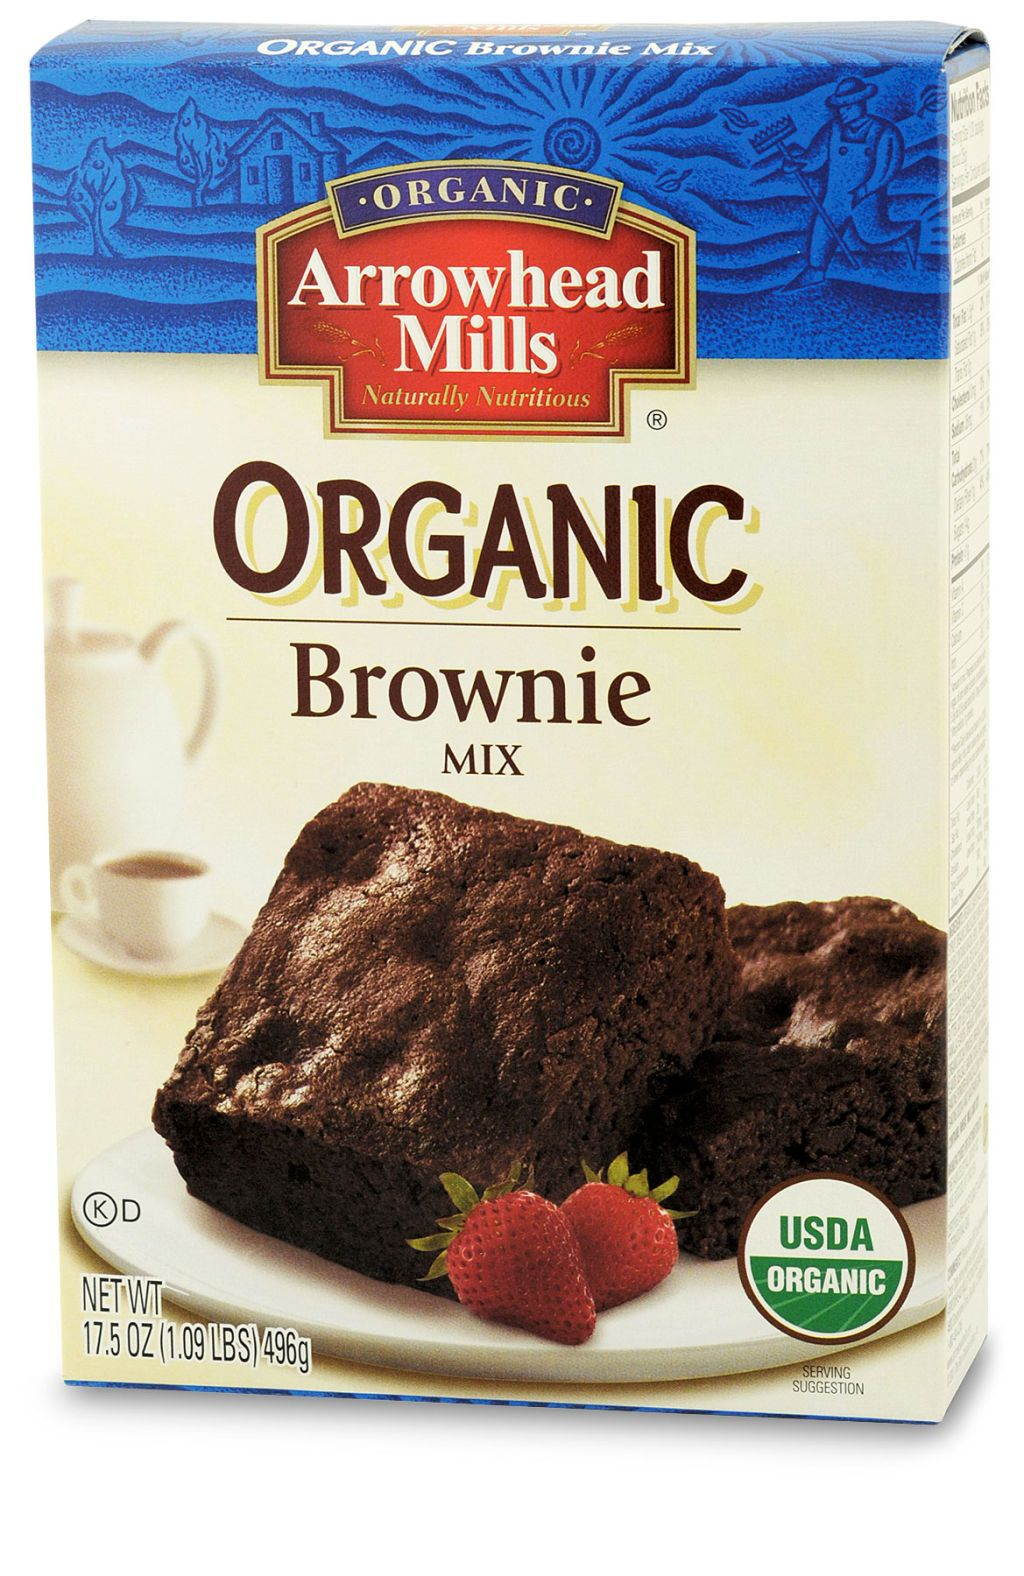 arrowhead mills organic brownie mix